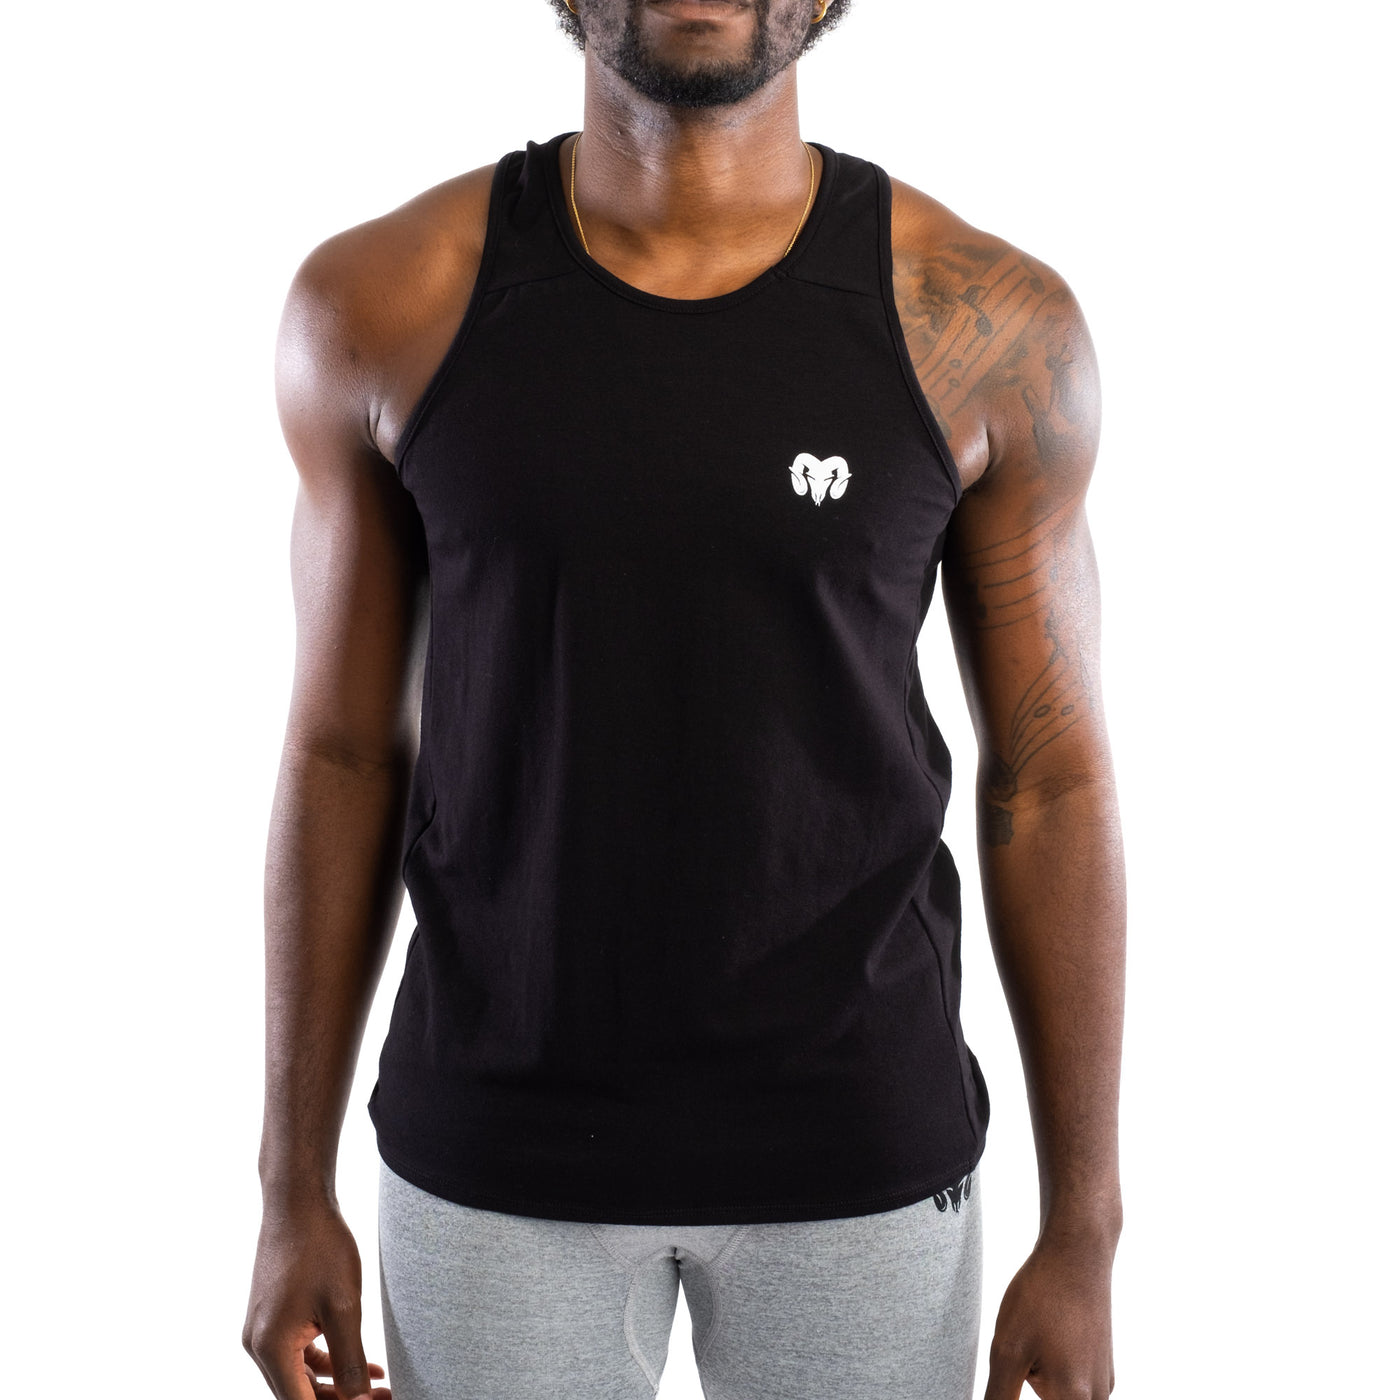 Dry Fit Training Tank Top, Black